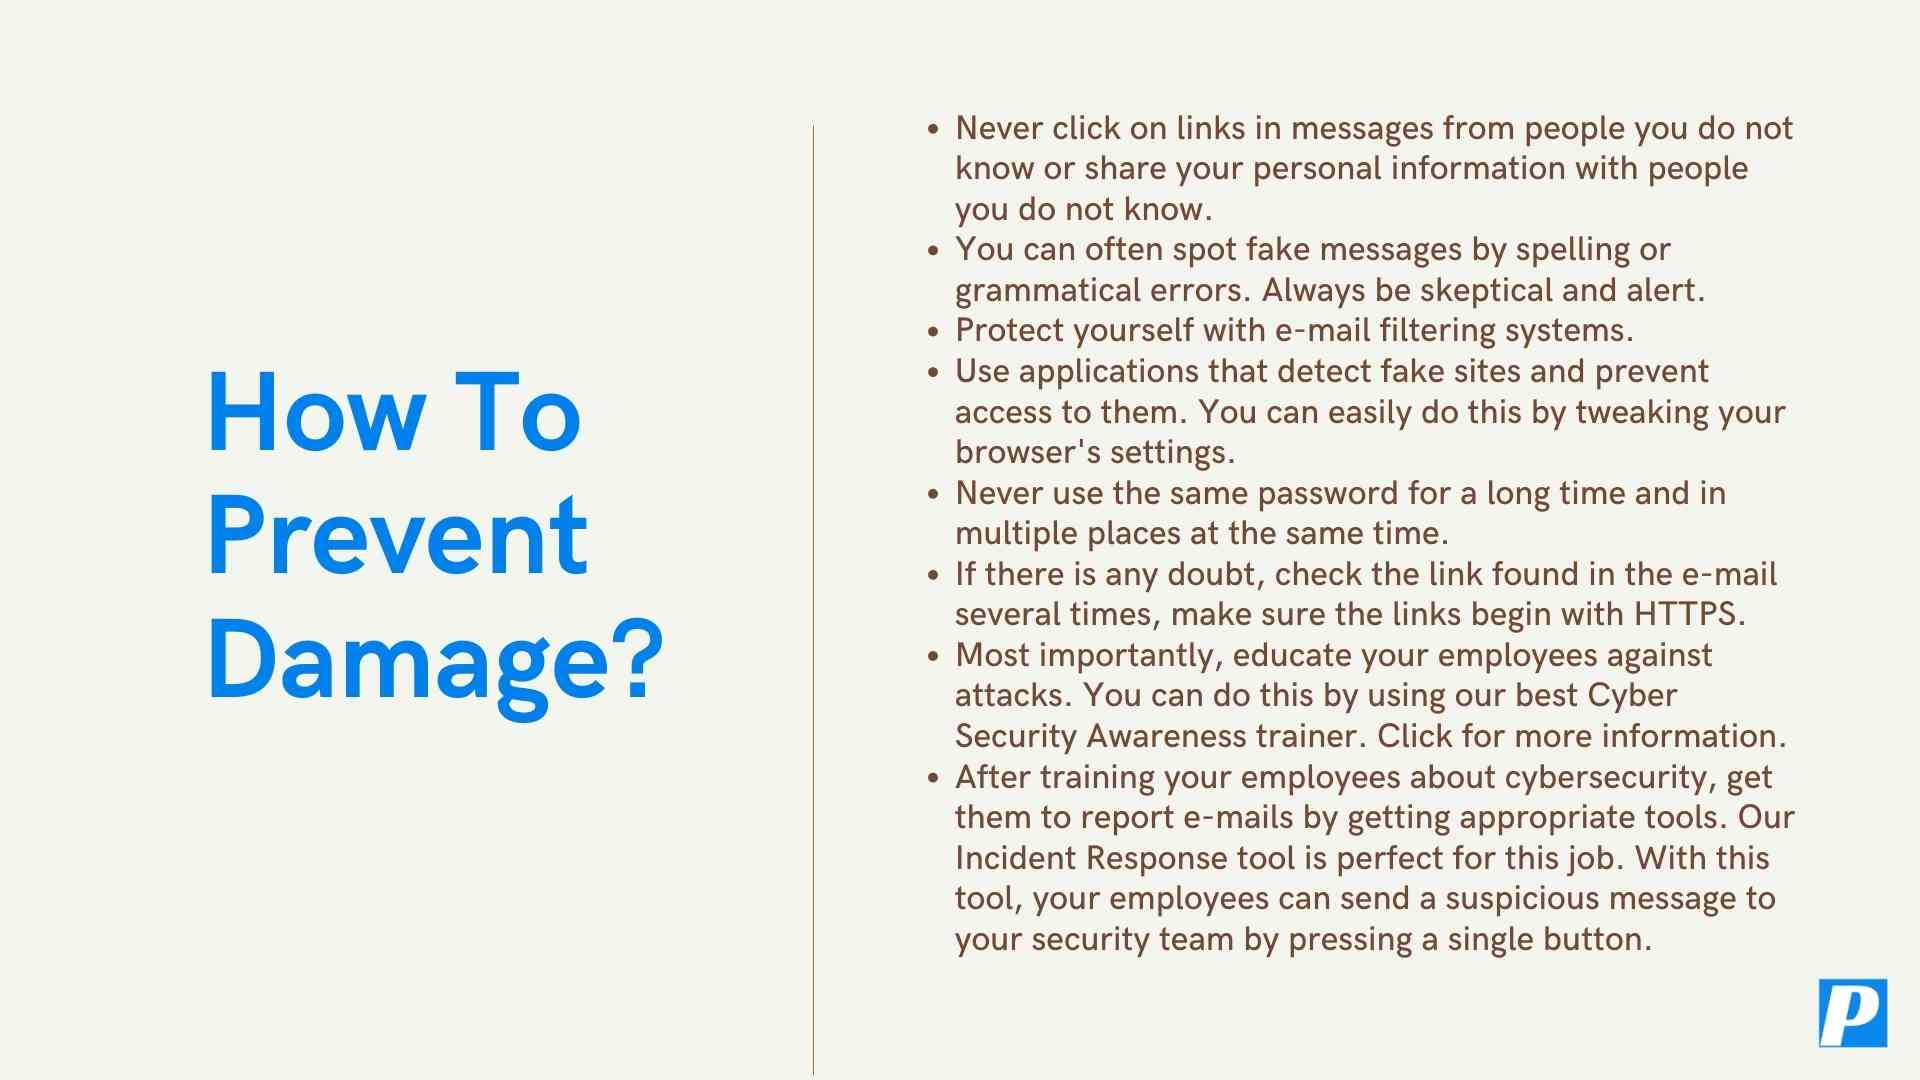 What Do Phishing Attacks Mean for Companies?